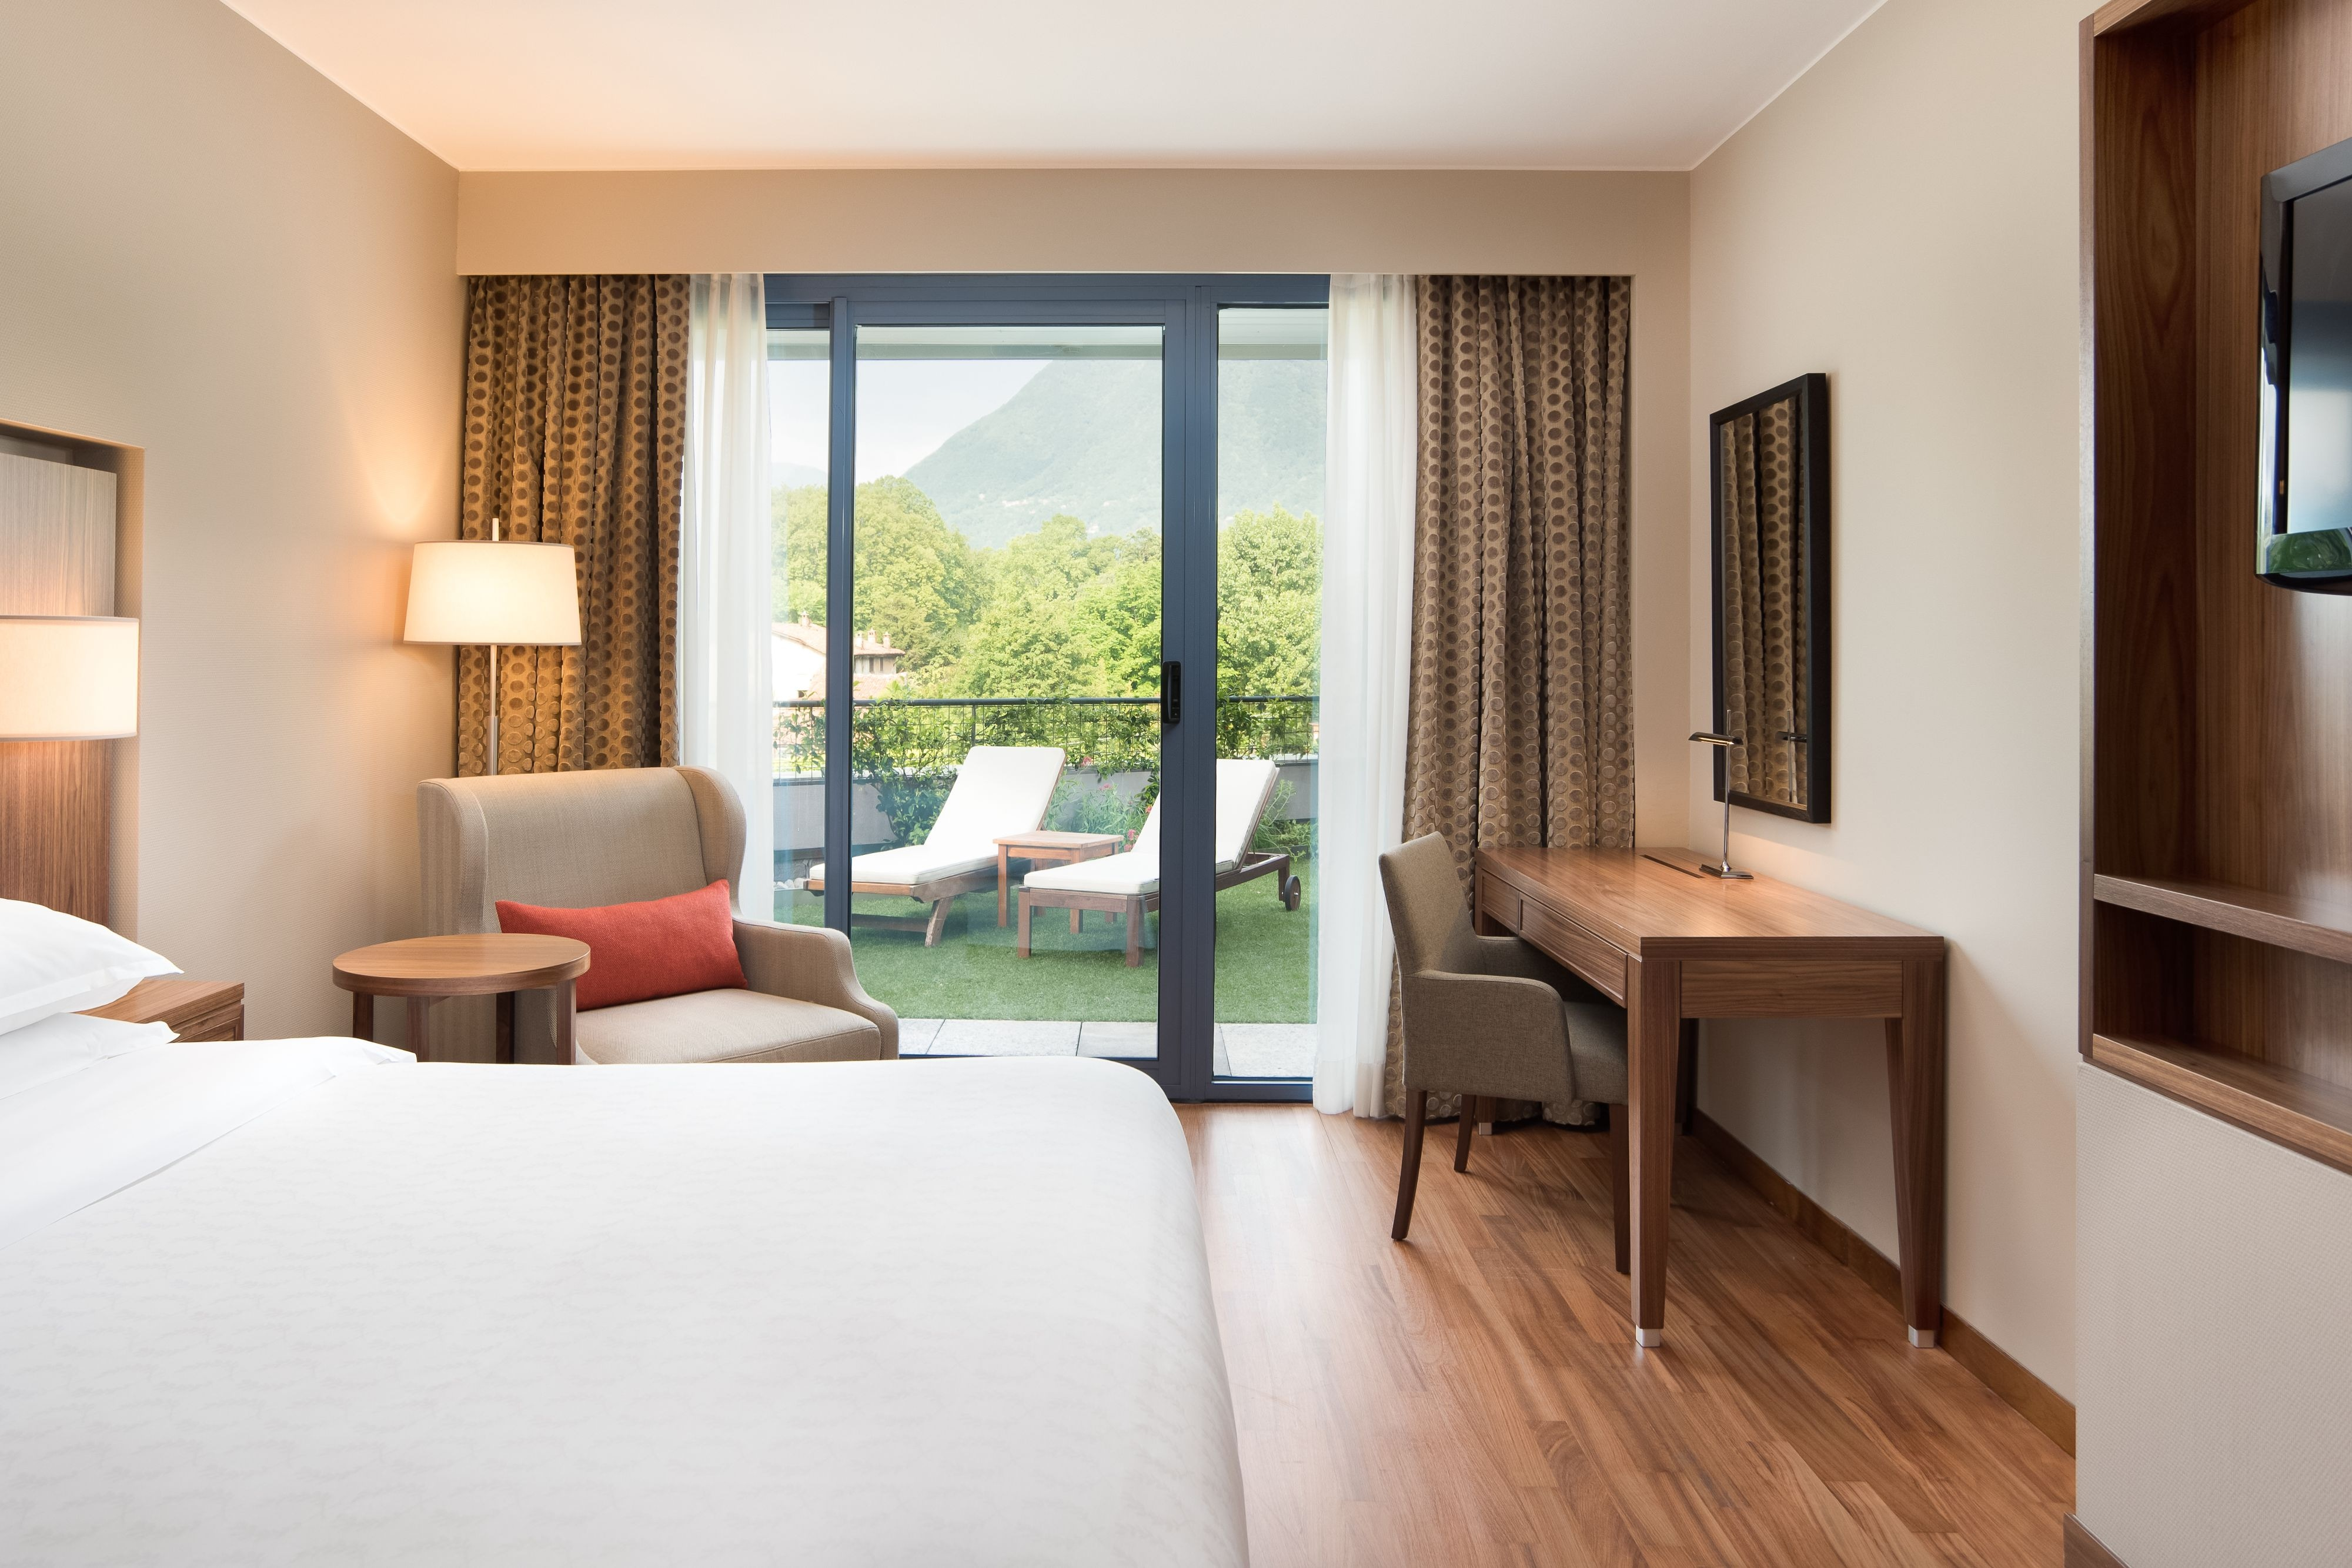 Deluxe Guest Room with Terrace